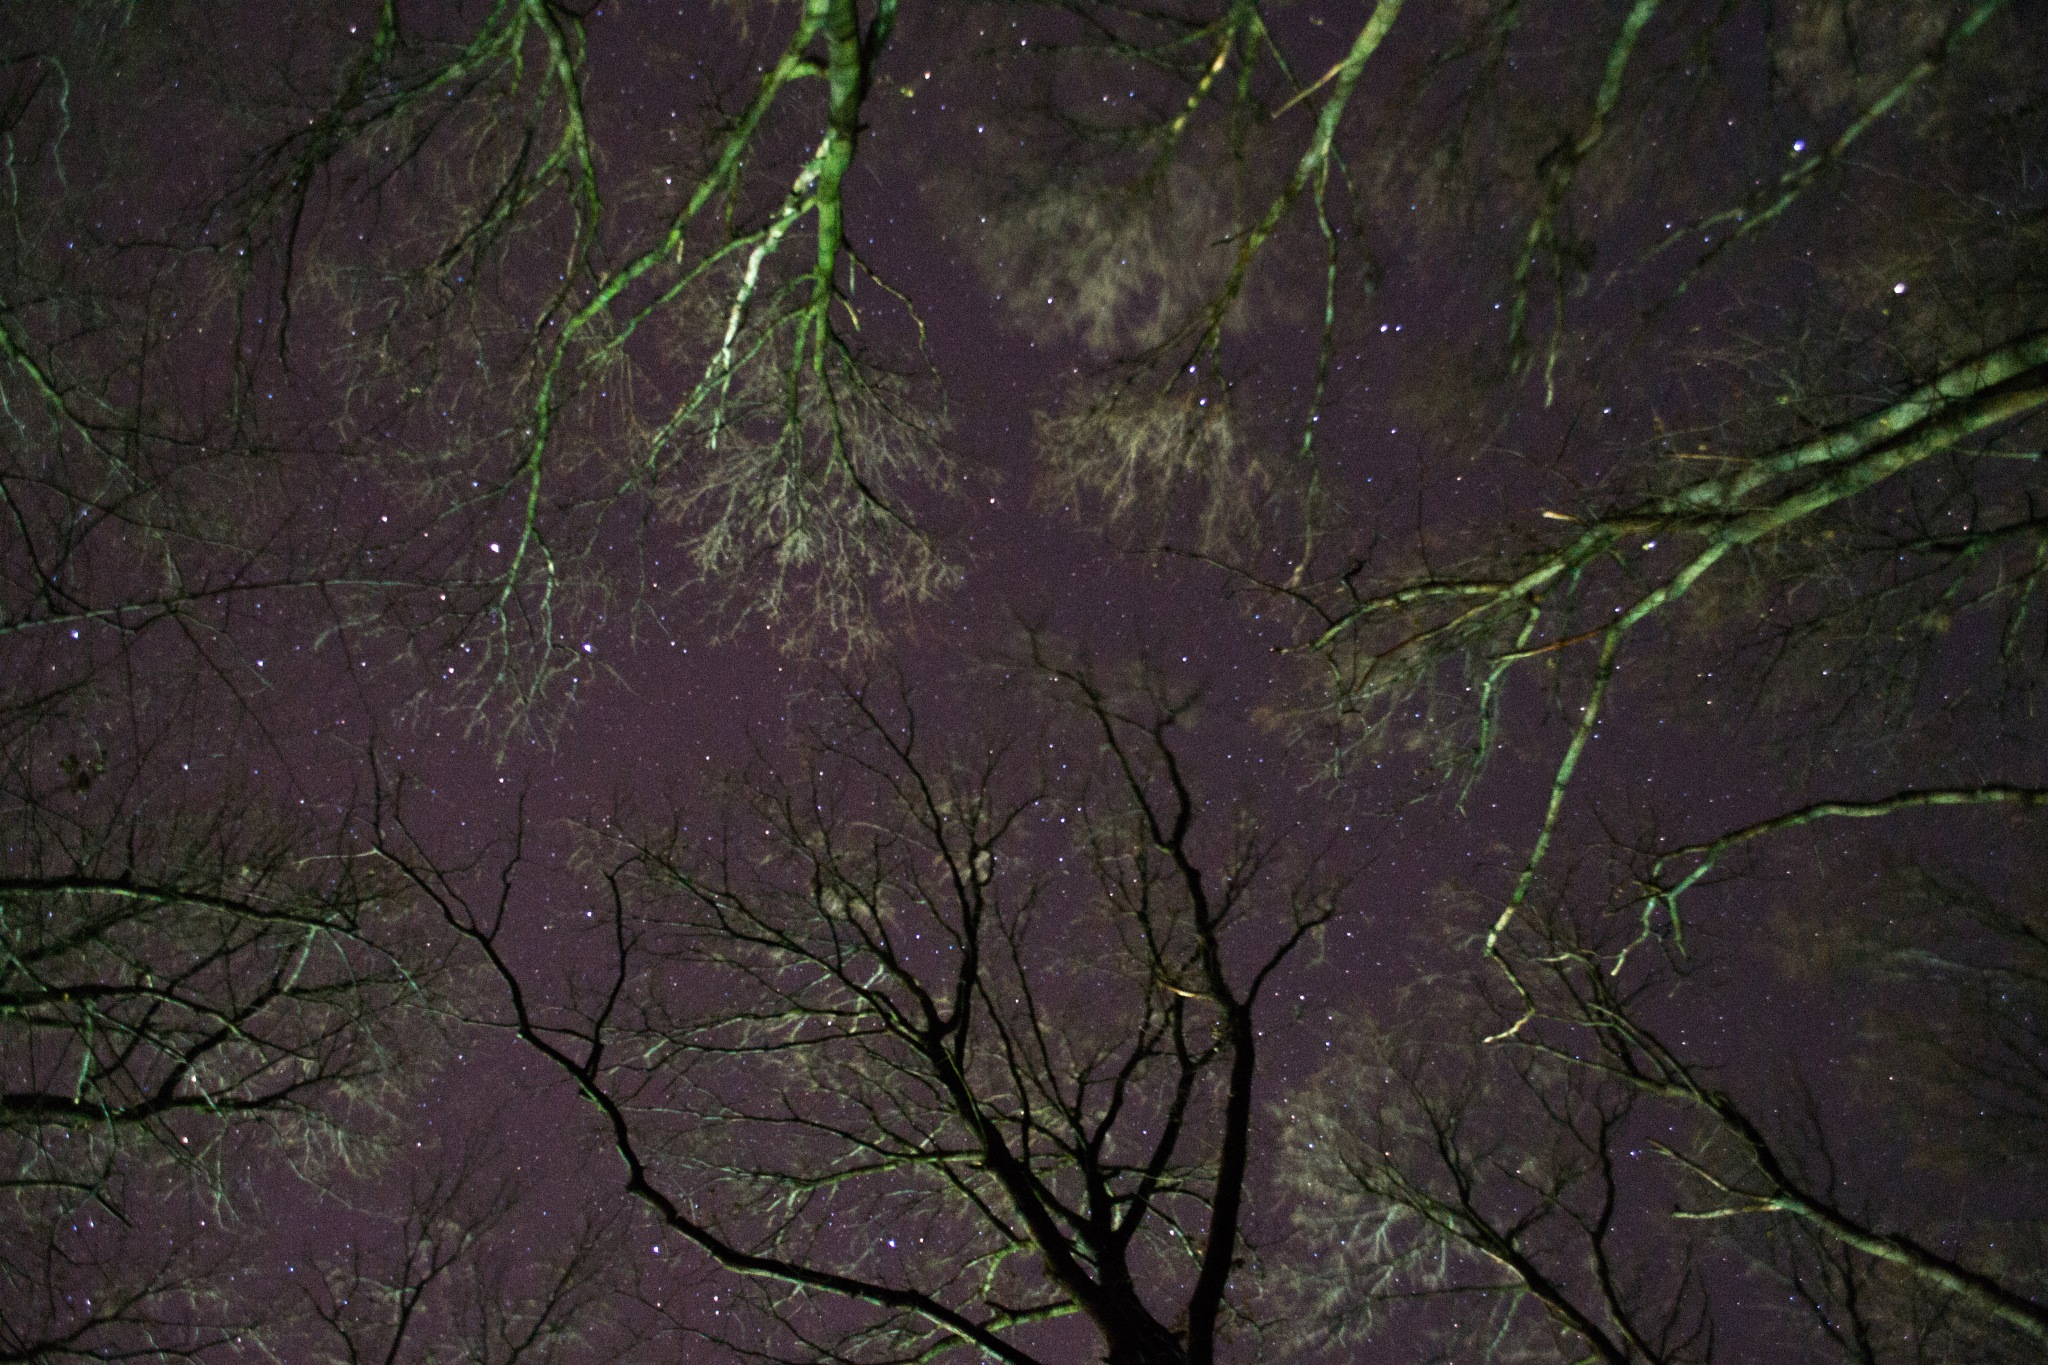 Woods and a starry sky by Paralangaj Andrea